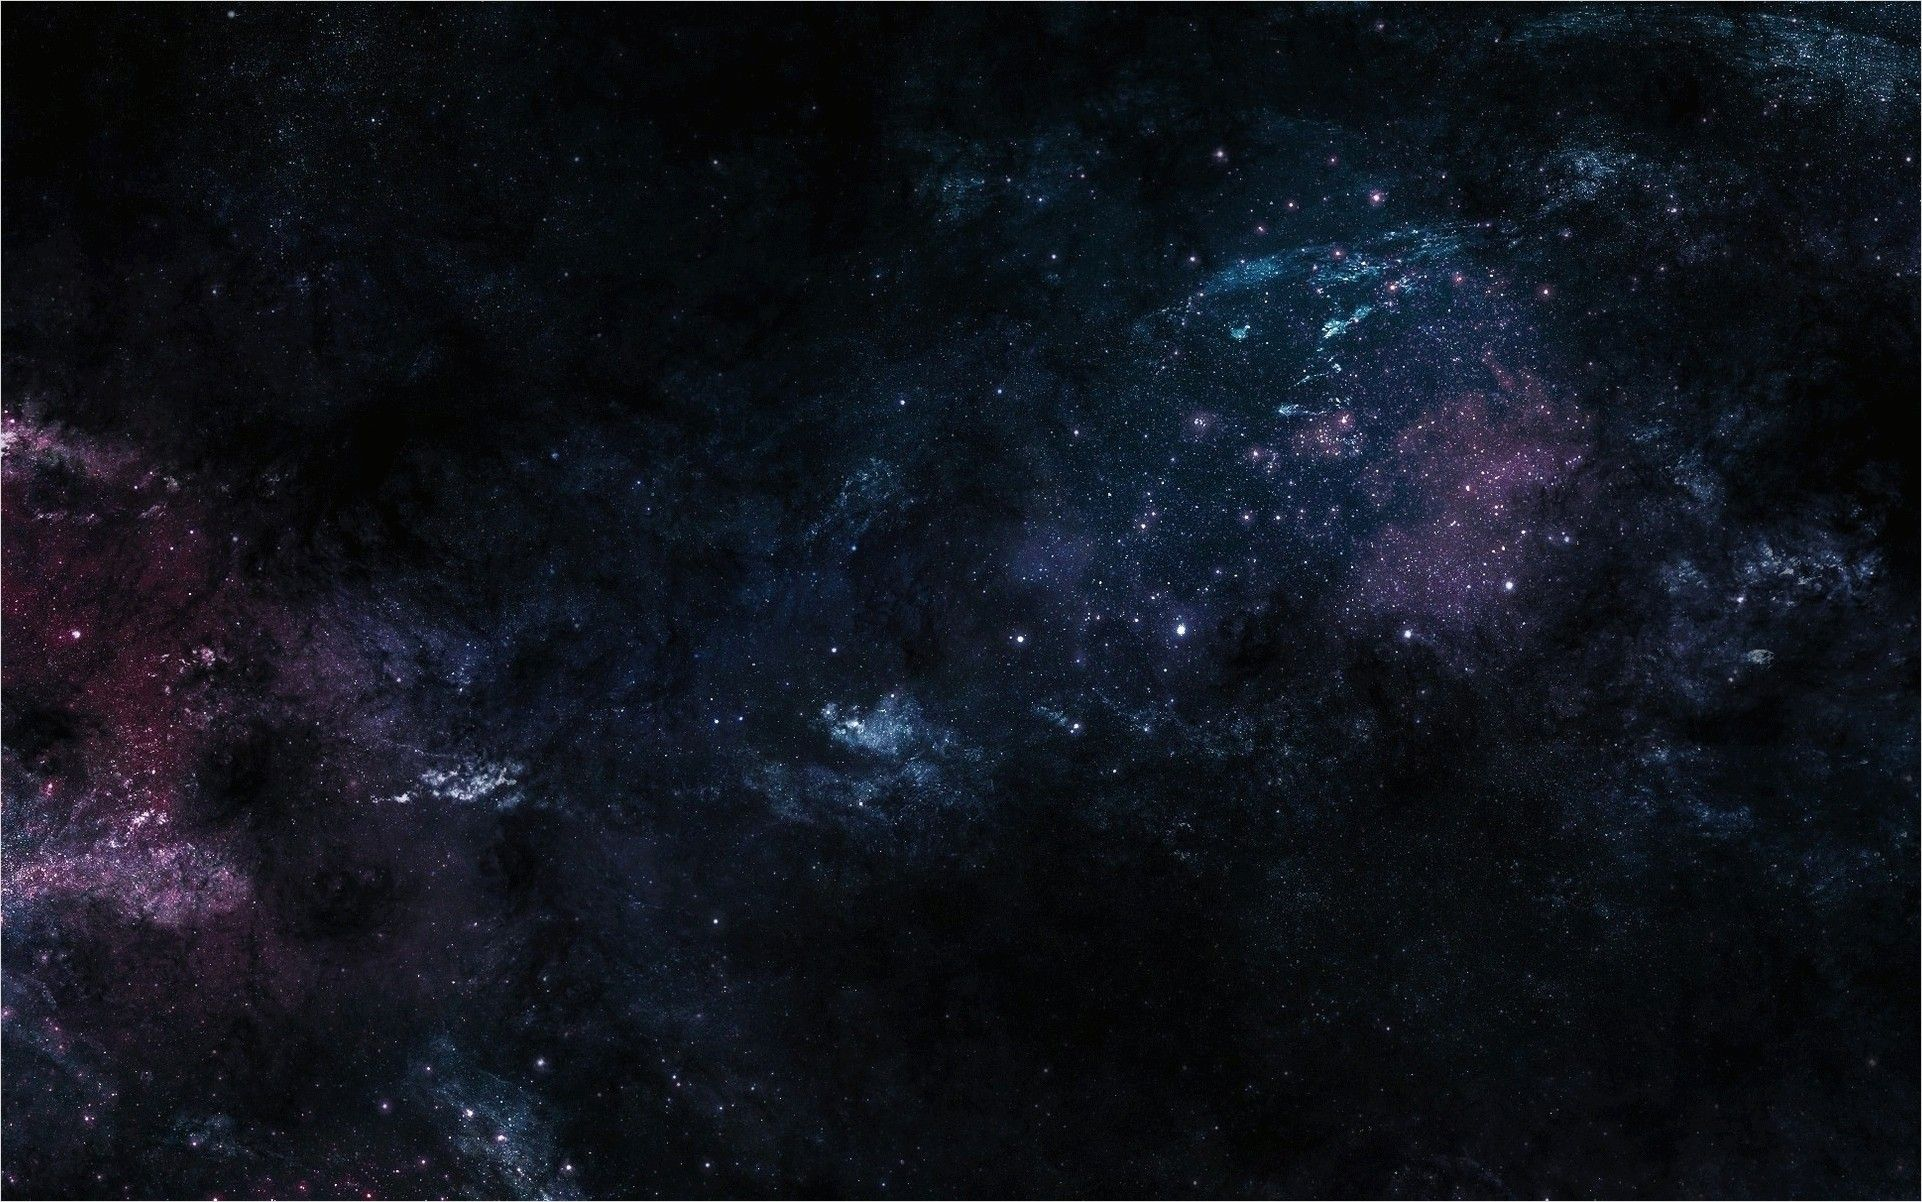 4k Space Wallpaper Gif 4 In 2020 Outer Space Wallpaper Wallpaper Space Space Art